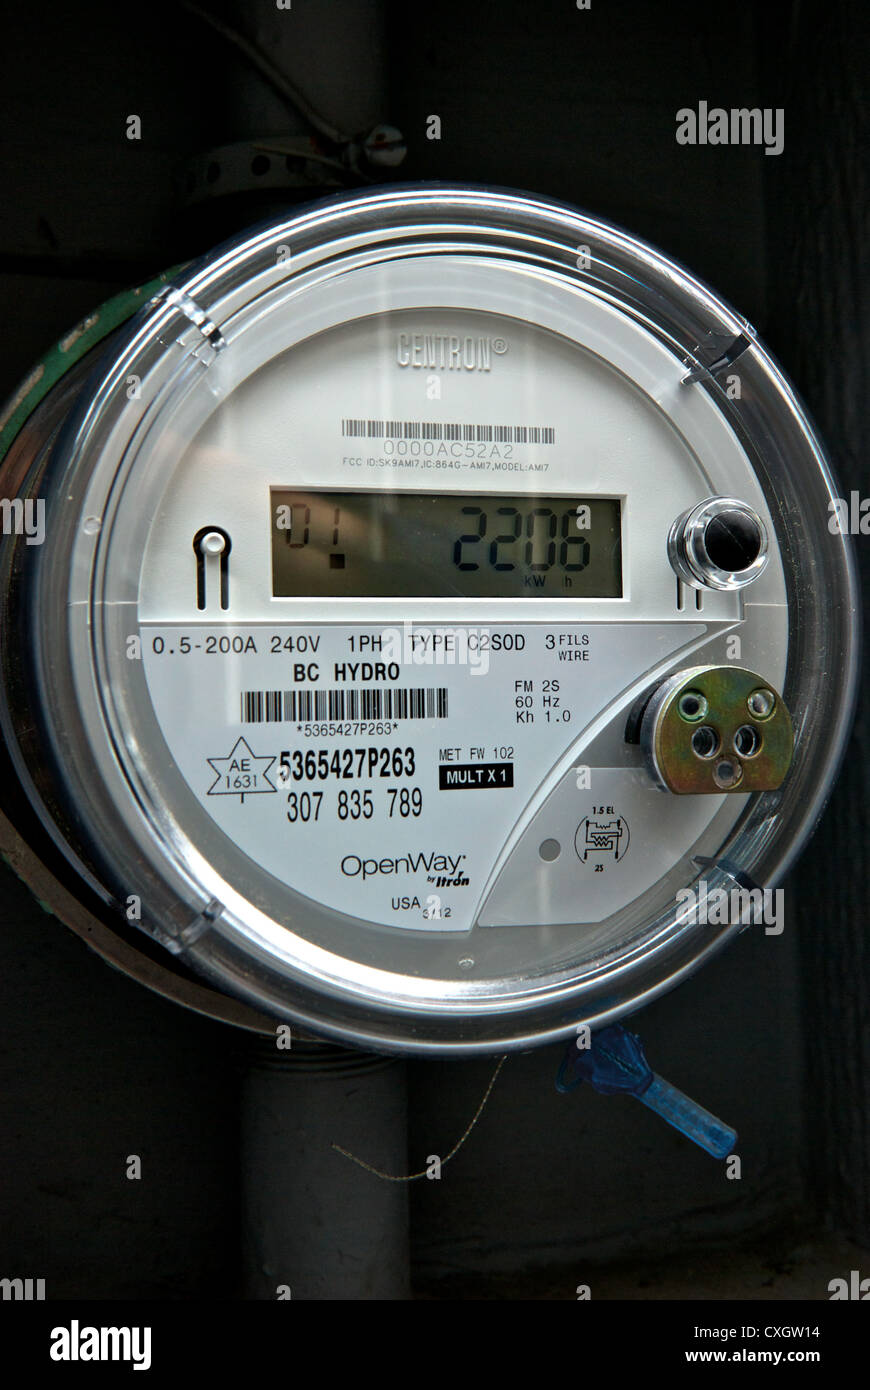 Digital Home Electricity Meter Stock Photos & Digital Home